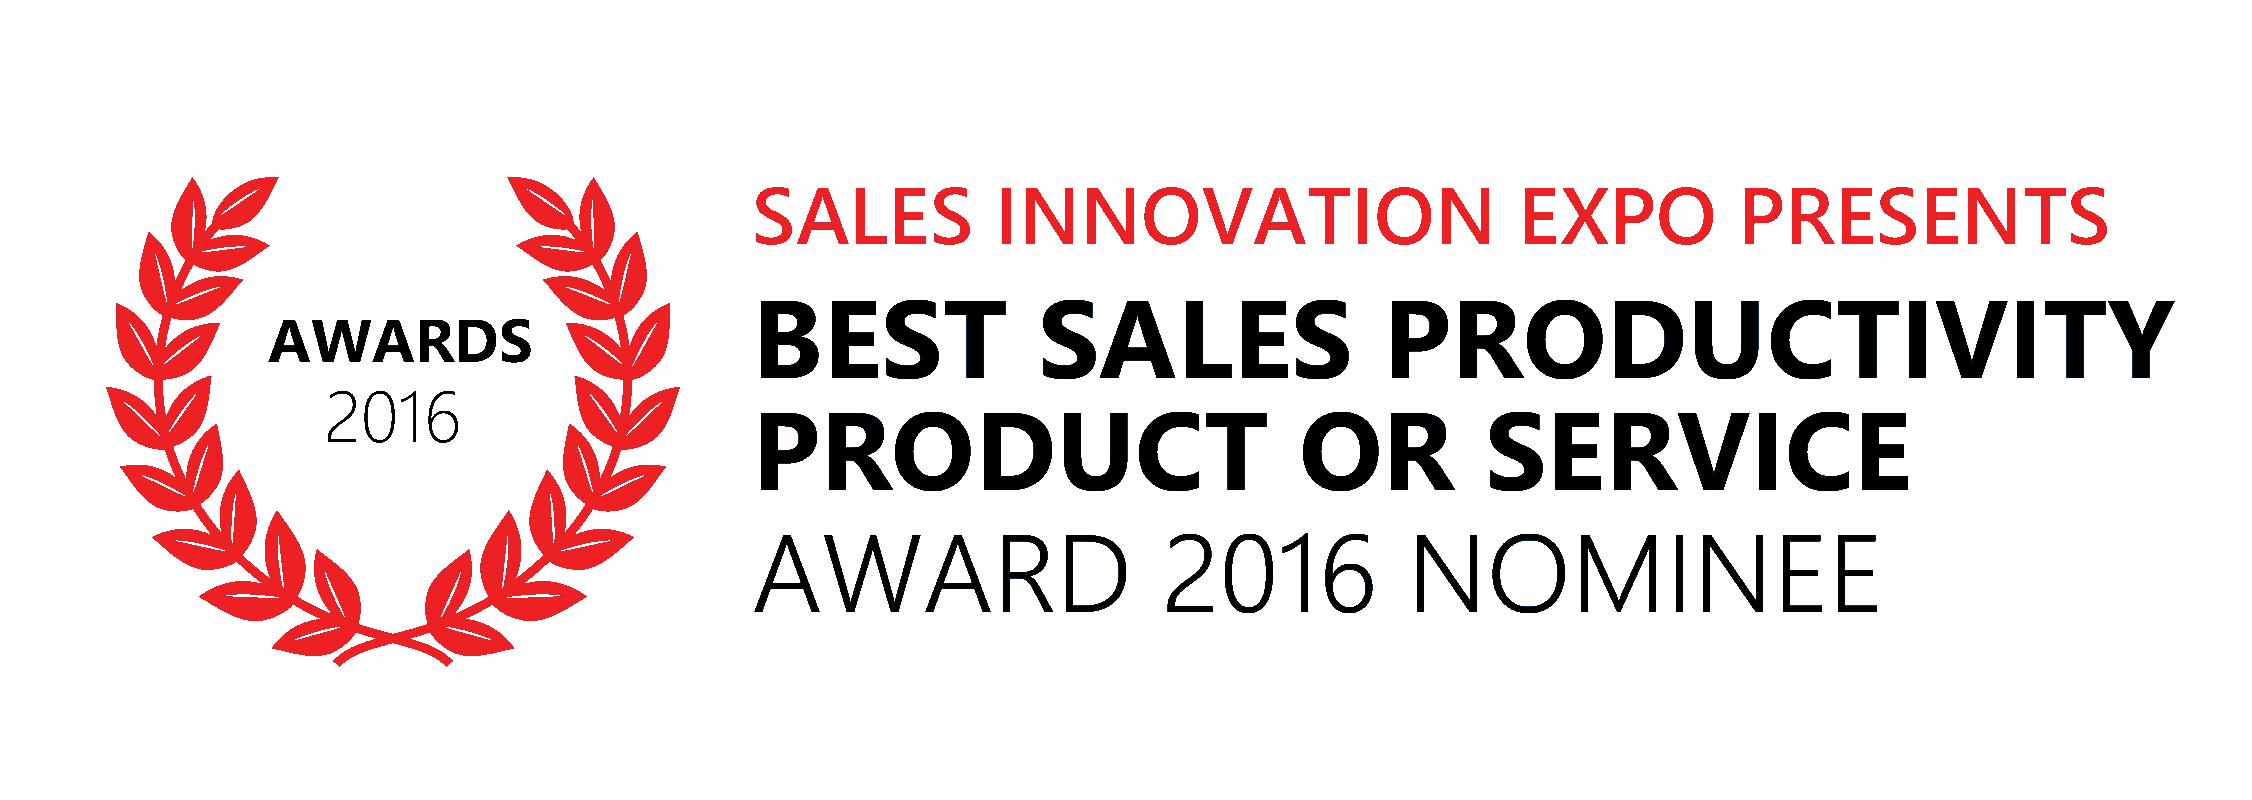 CommissionCrowd Nominated For Best Sales Productivity Product or Service 2016